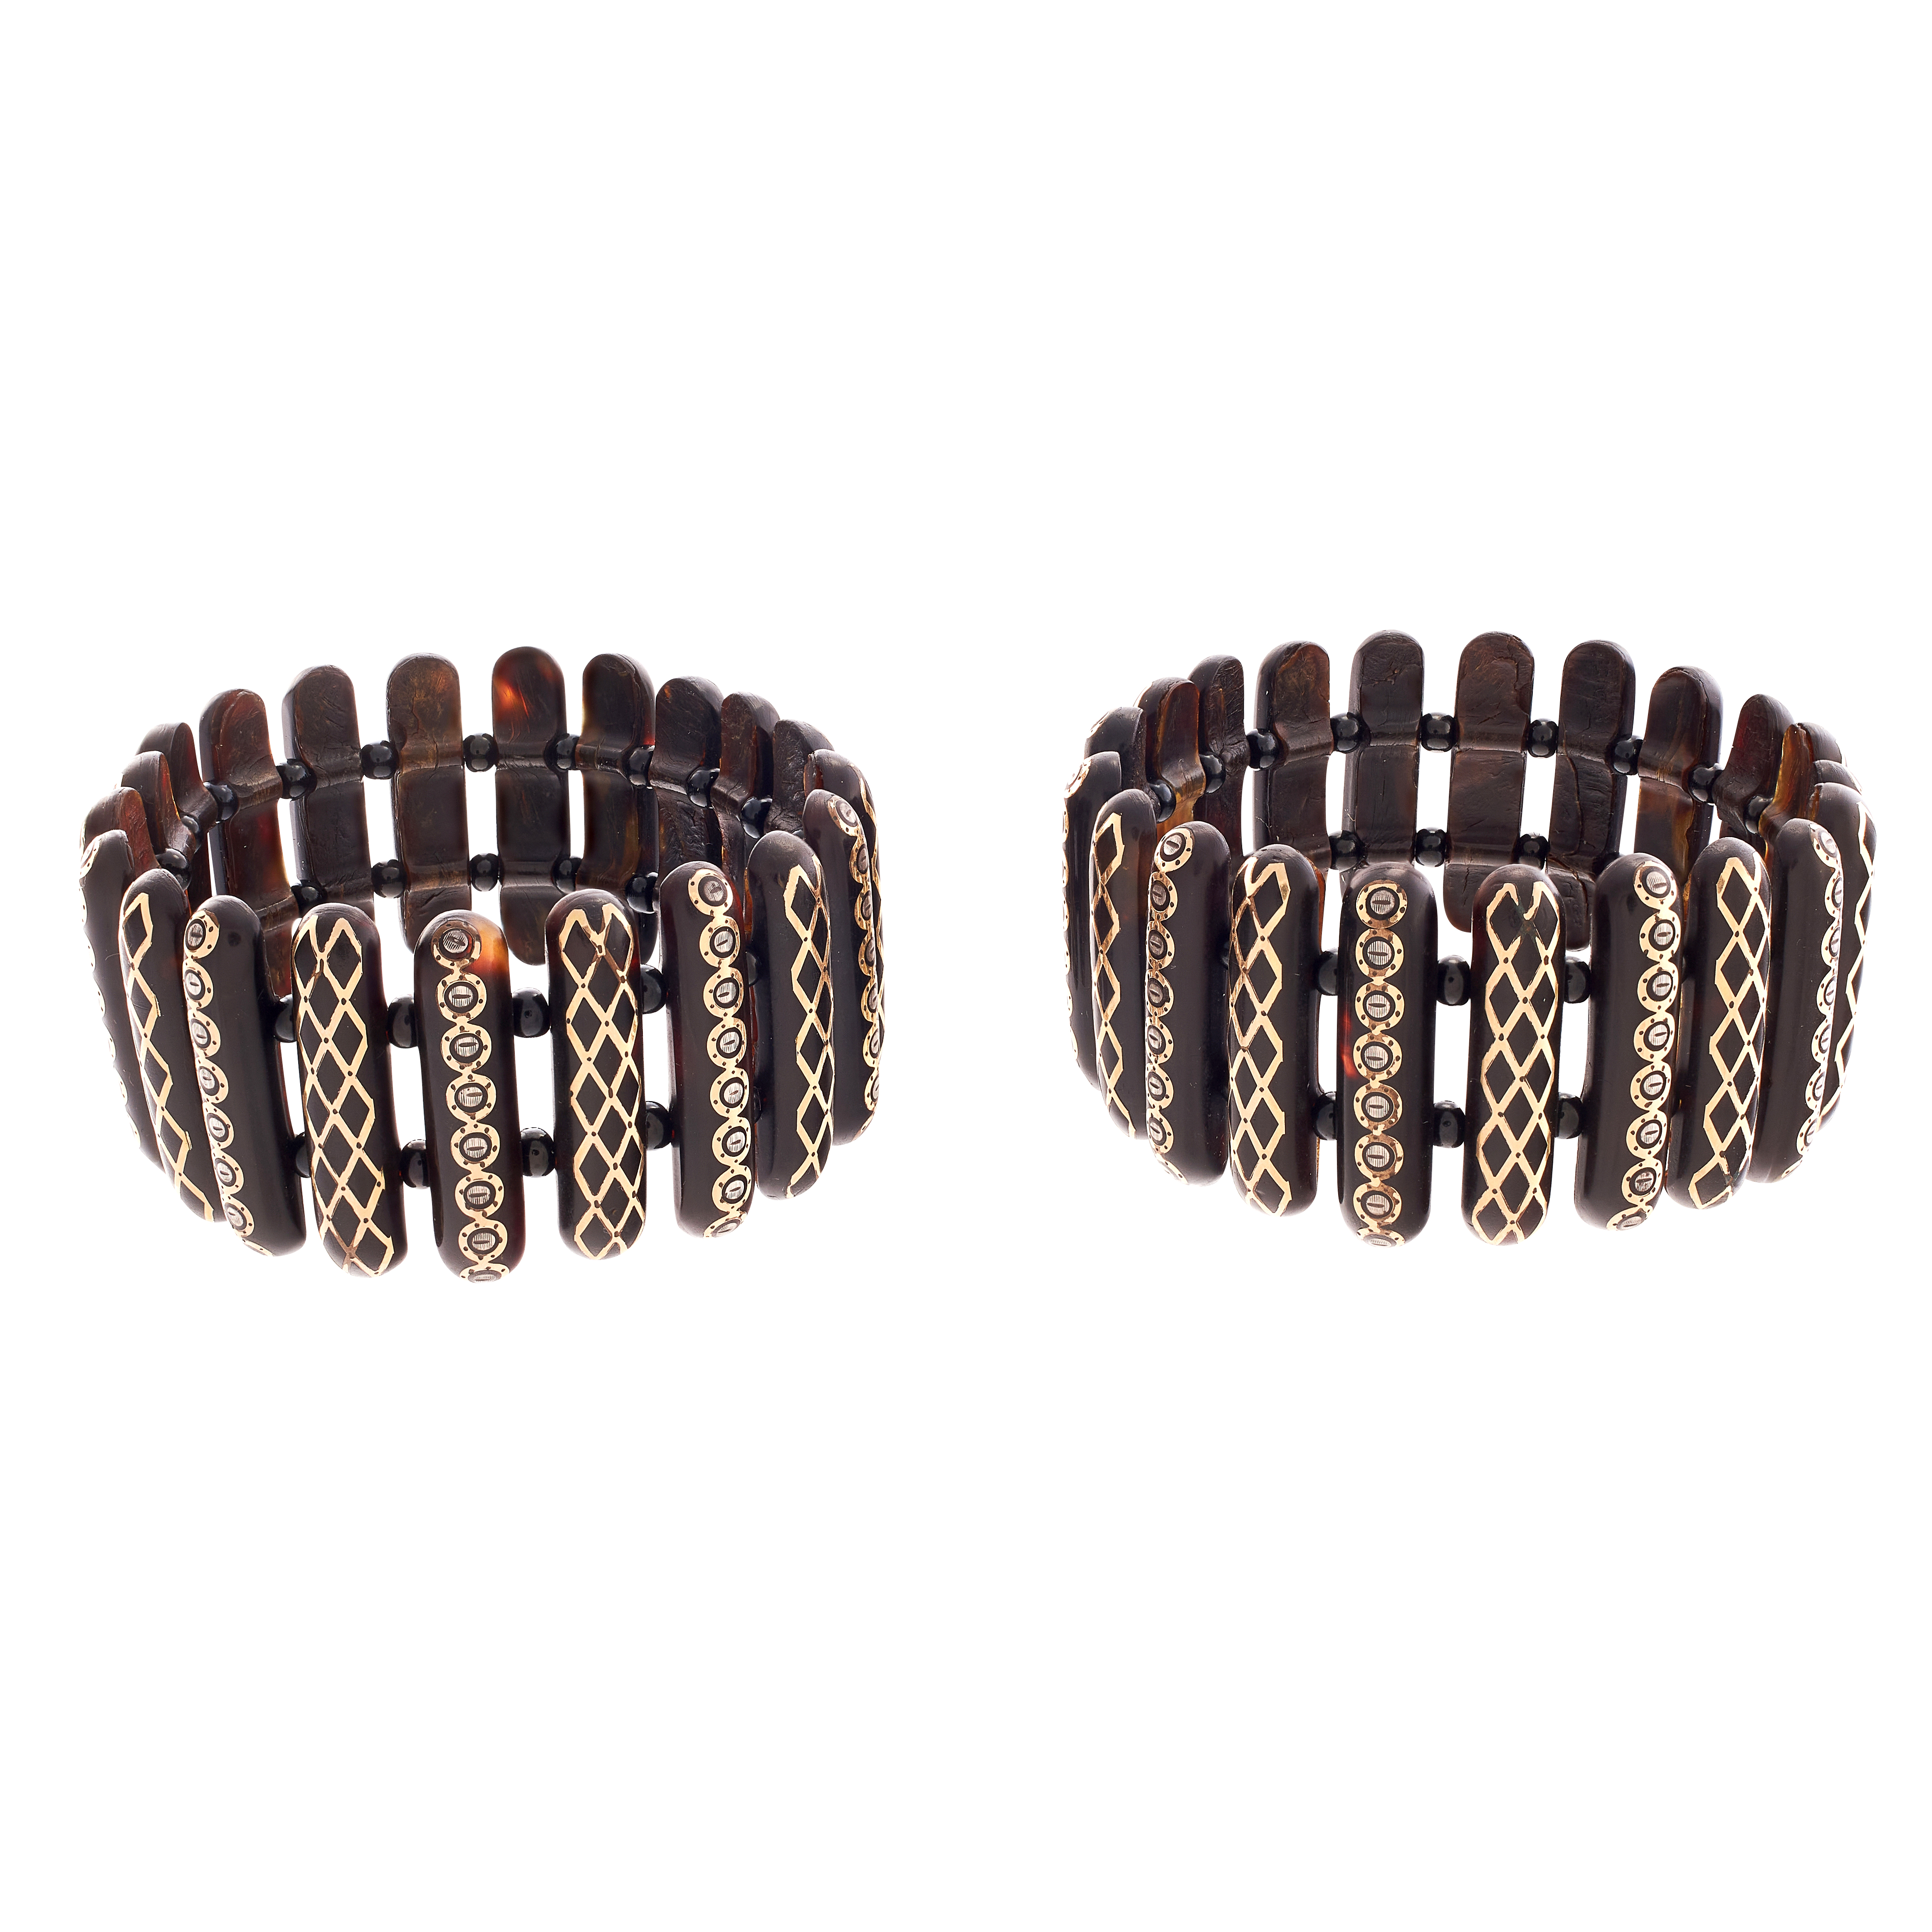 A PAIR OF ANTIQUE PIQUE TORTOISESHELL BRACELETS set with pique batons, spaced by tortoiseshell